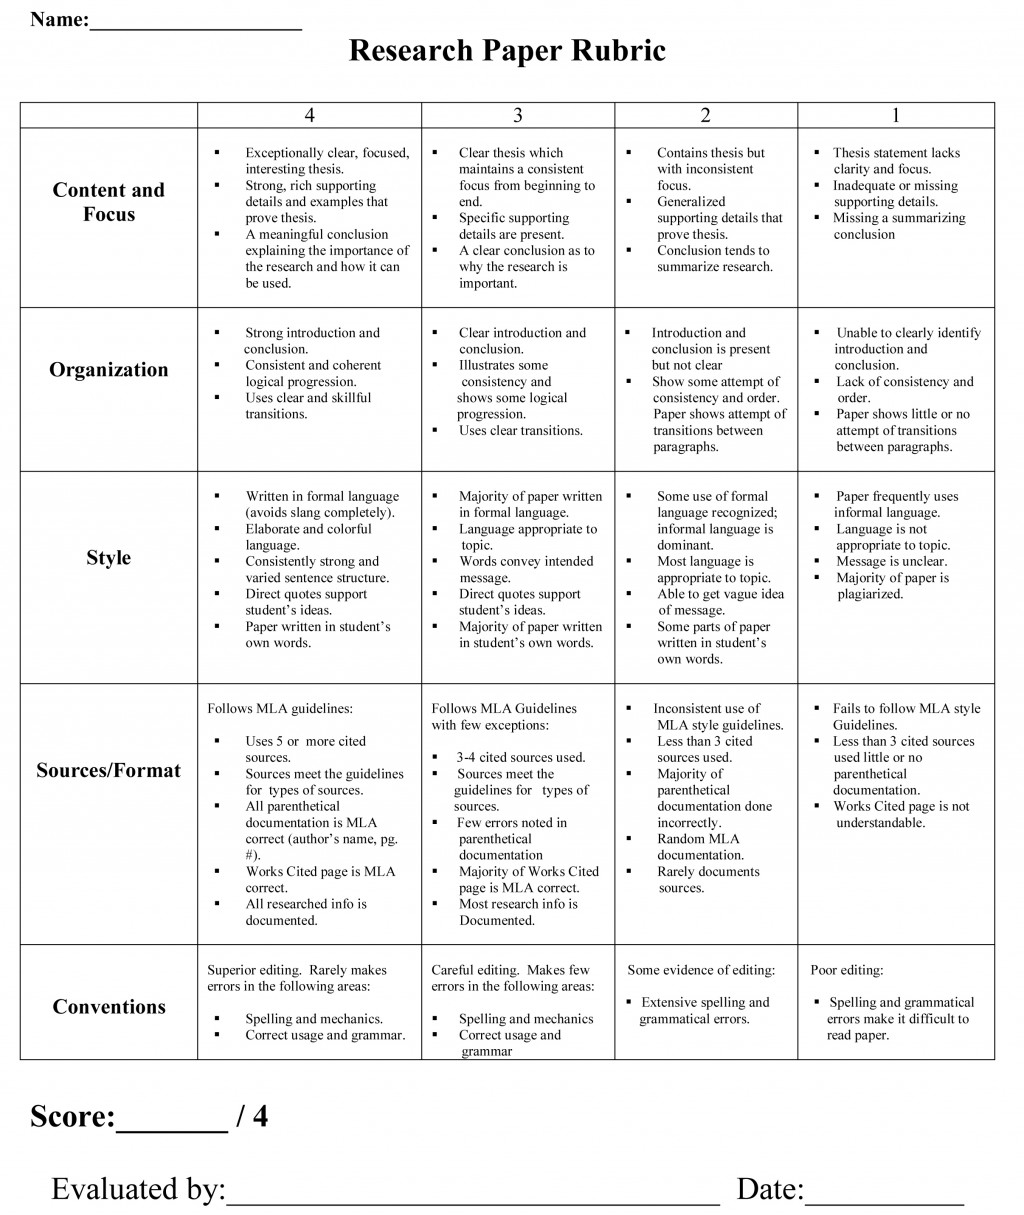 004 Research Paper Writer Services Rubric Free Phenomenal Large